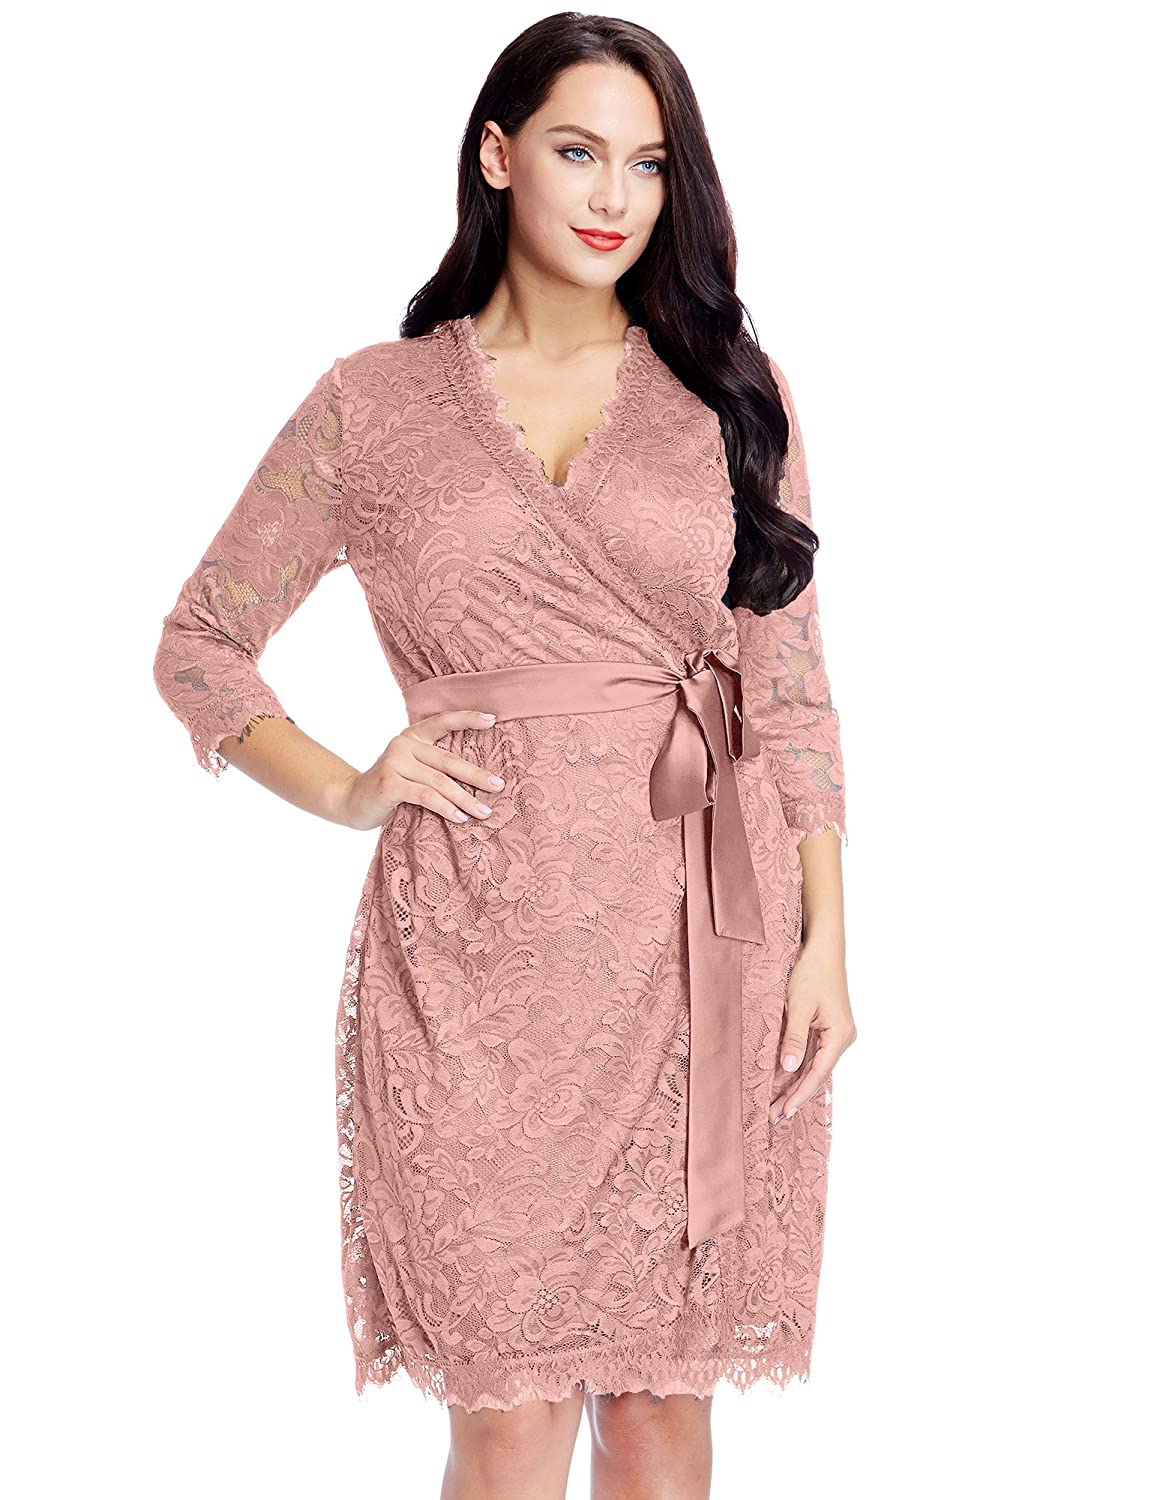 LookbookStore Women's Plus Size Lace 3/4 Sleeves Formal True Wrap Dress DR-1615